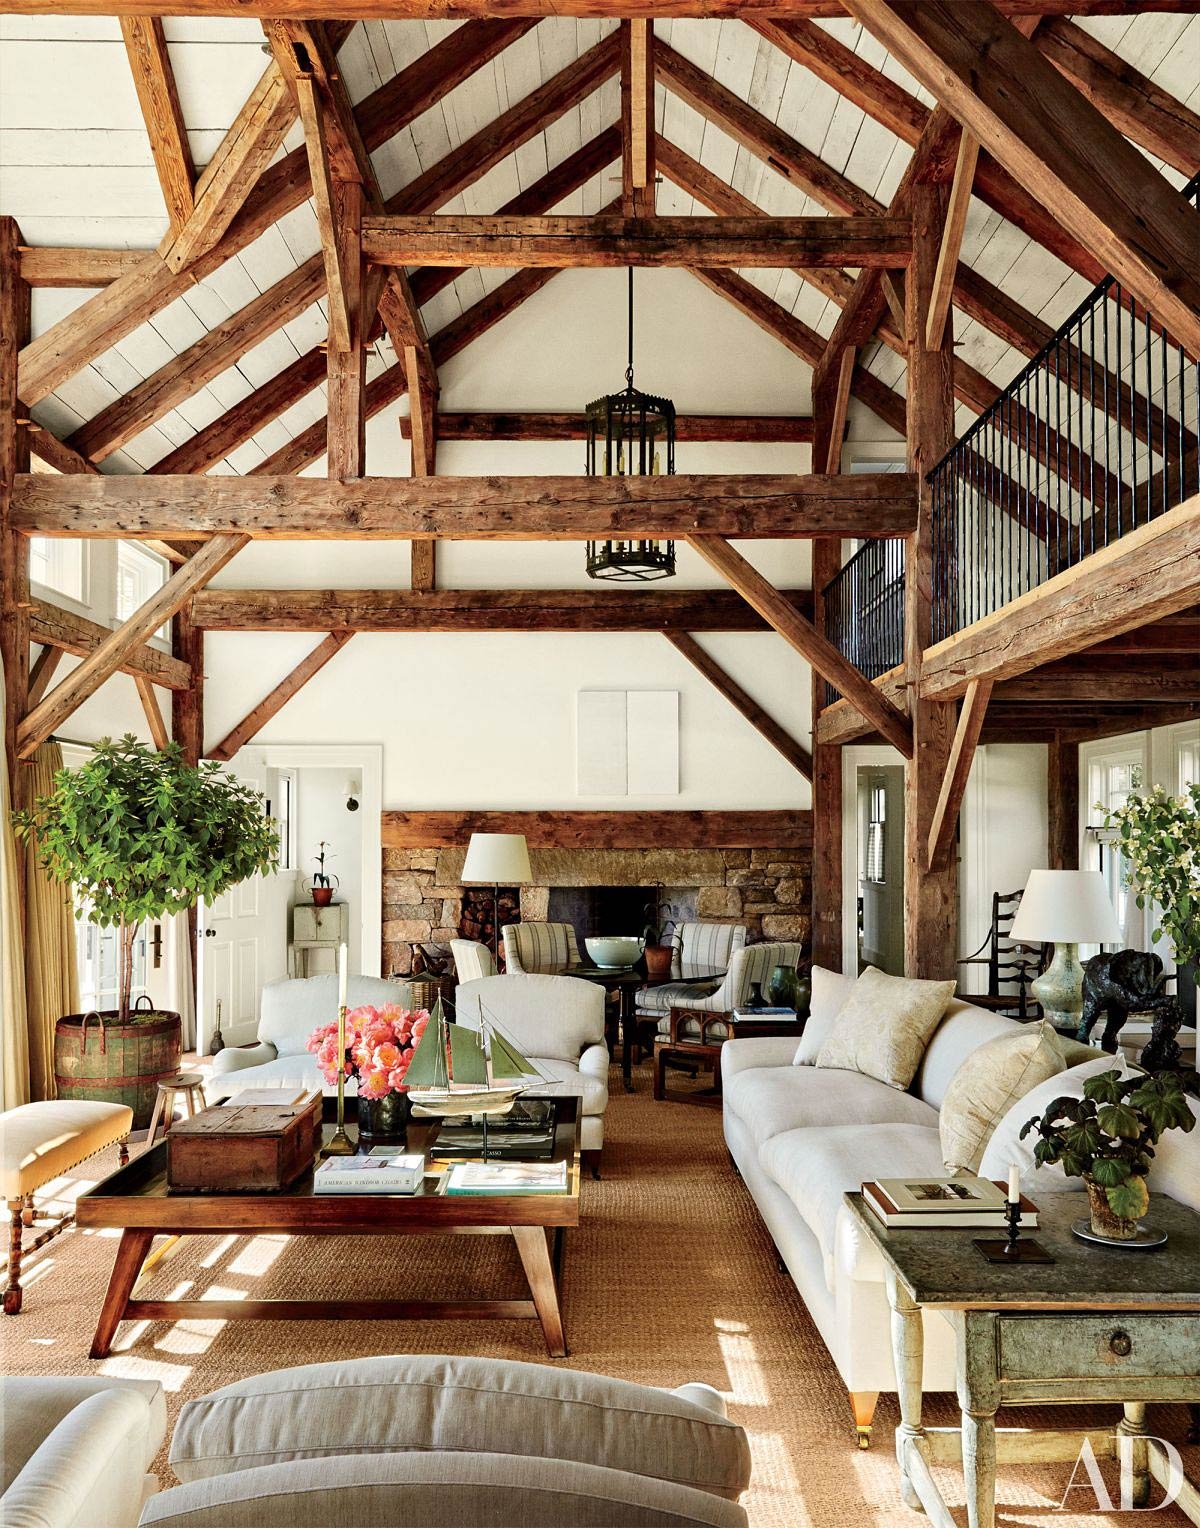 Attic Living Room With Wooden Beams